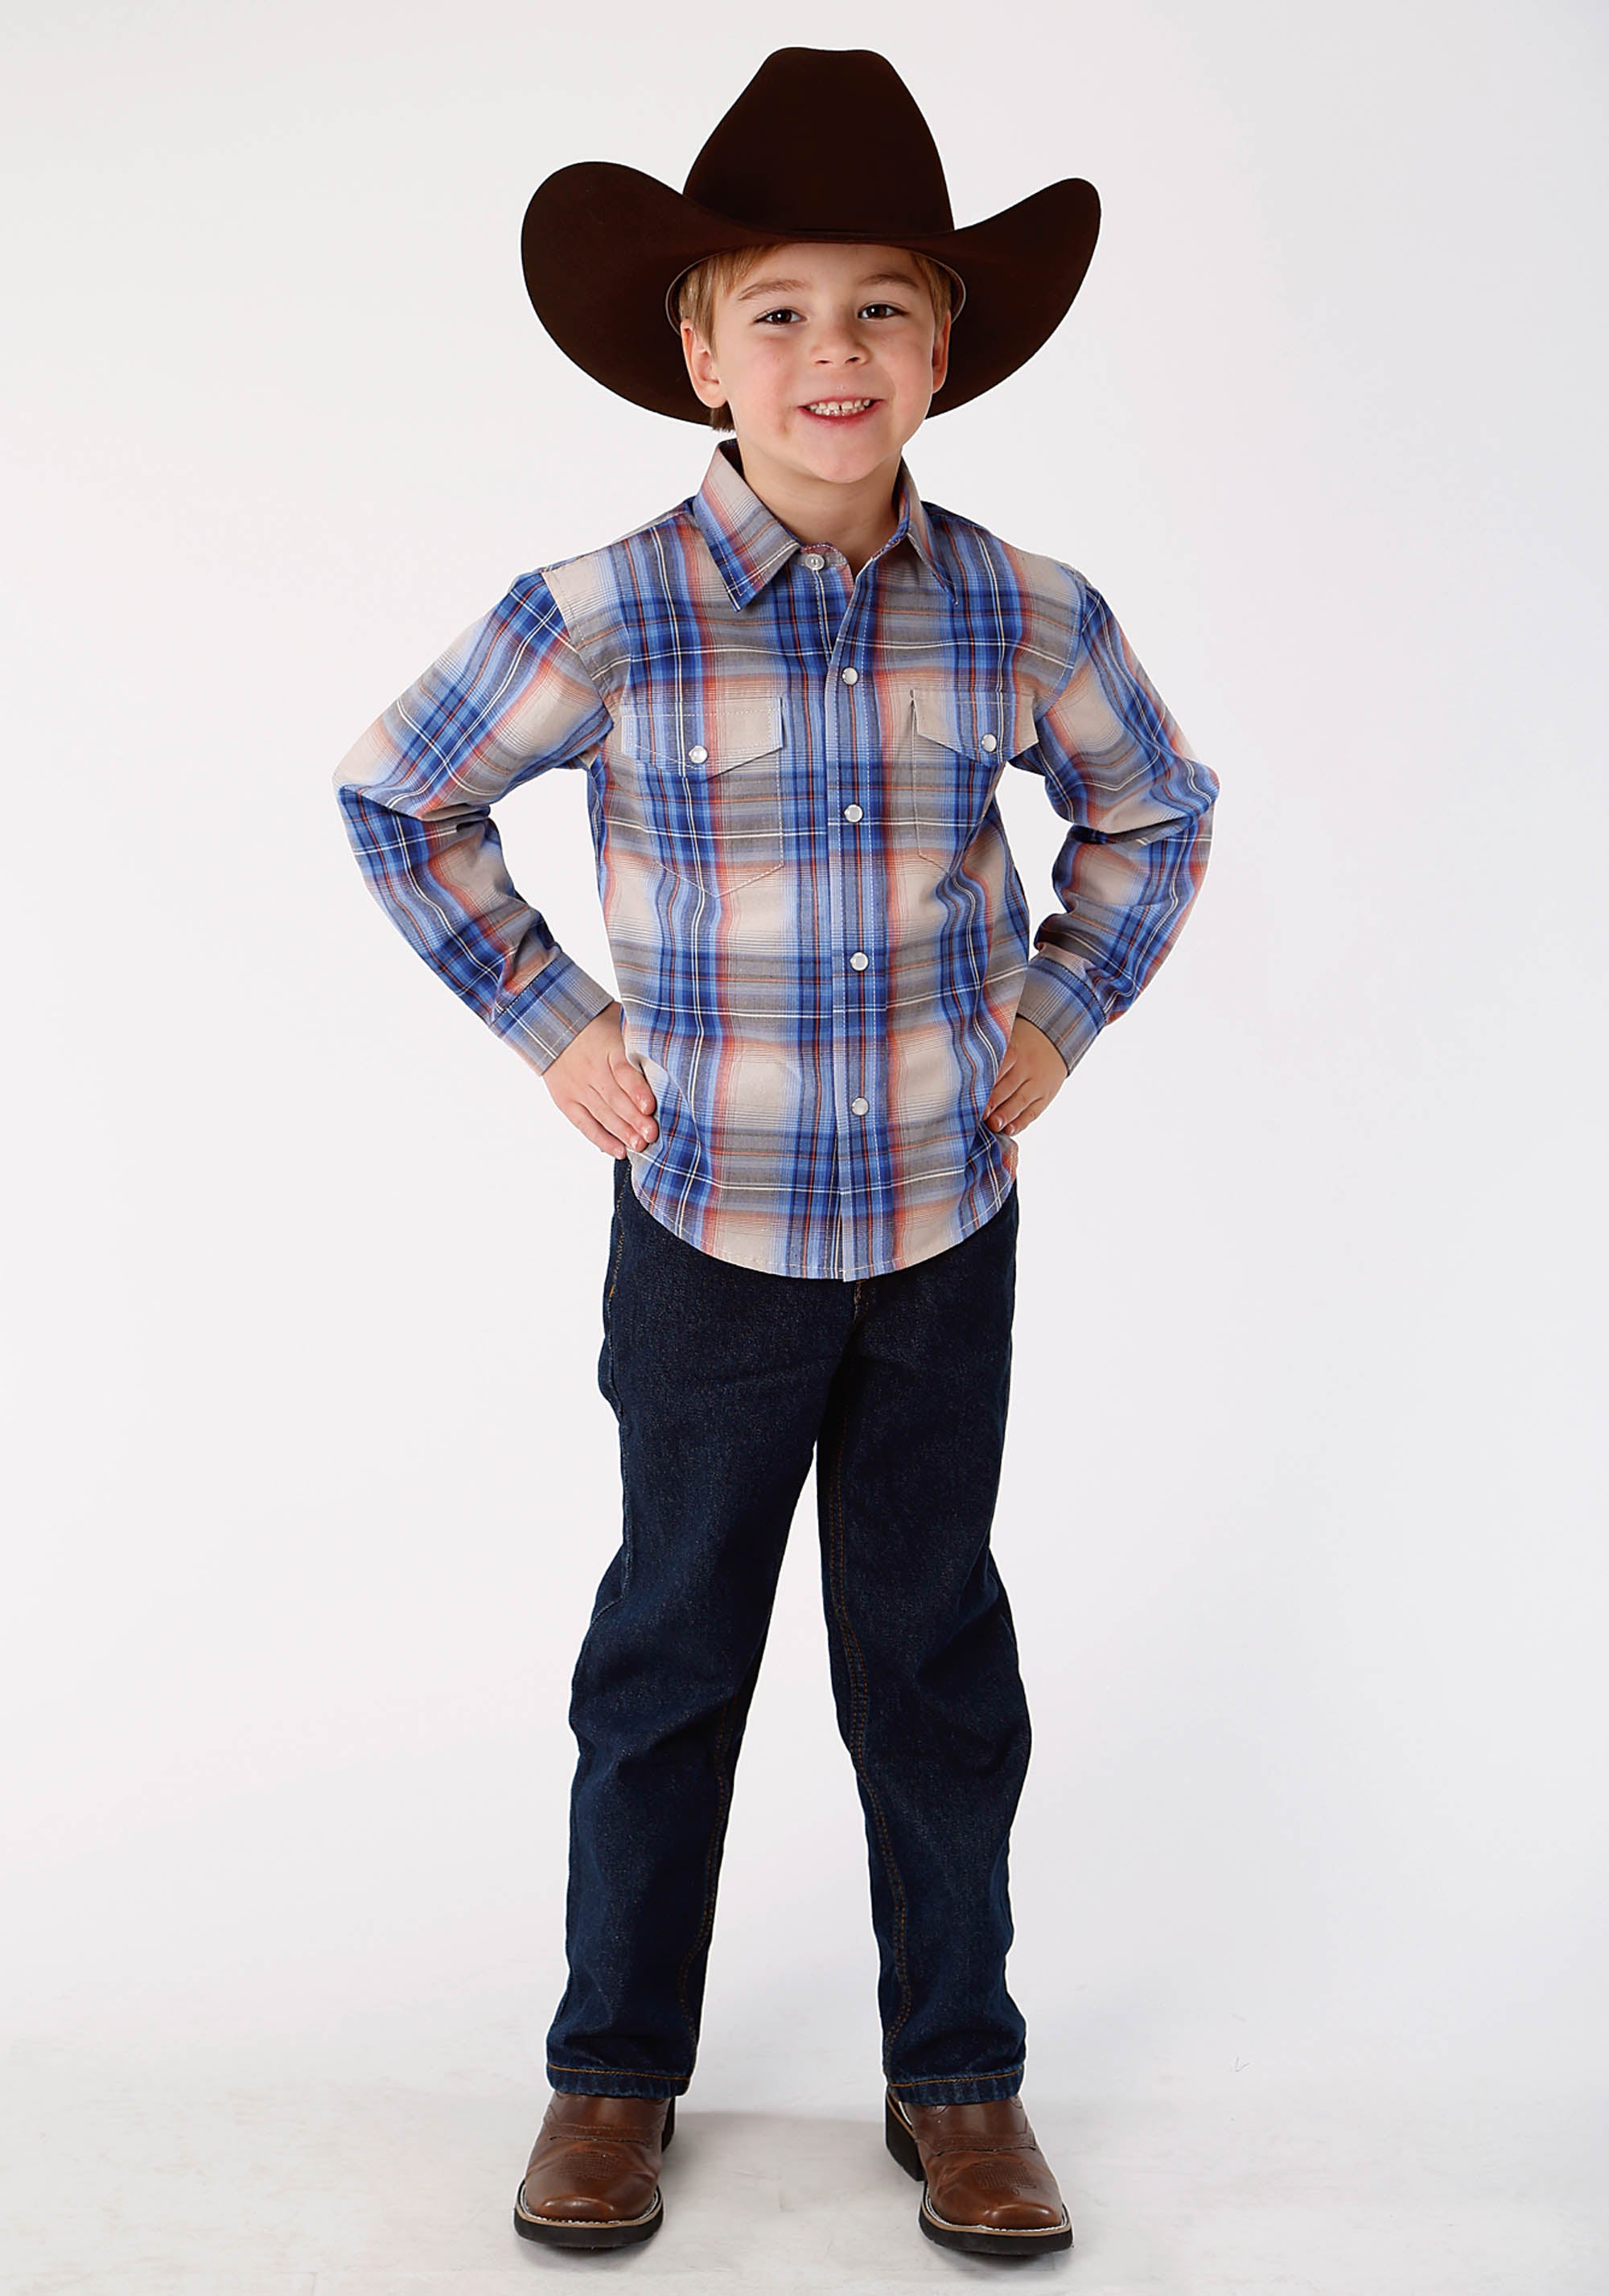 ROPER BOYS BLUE 9641 COPPER CREEK PLAID BOYS AMARILLO COLLECTION- COPPER CREEK LONG SLEEVE